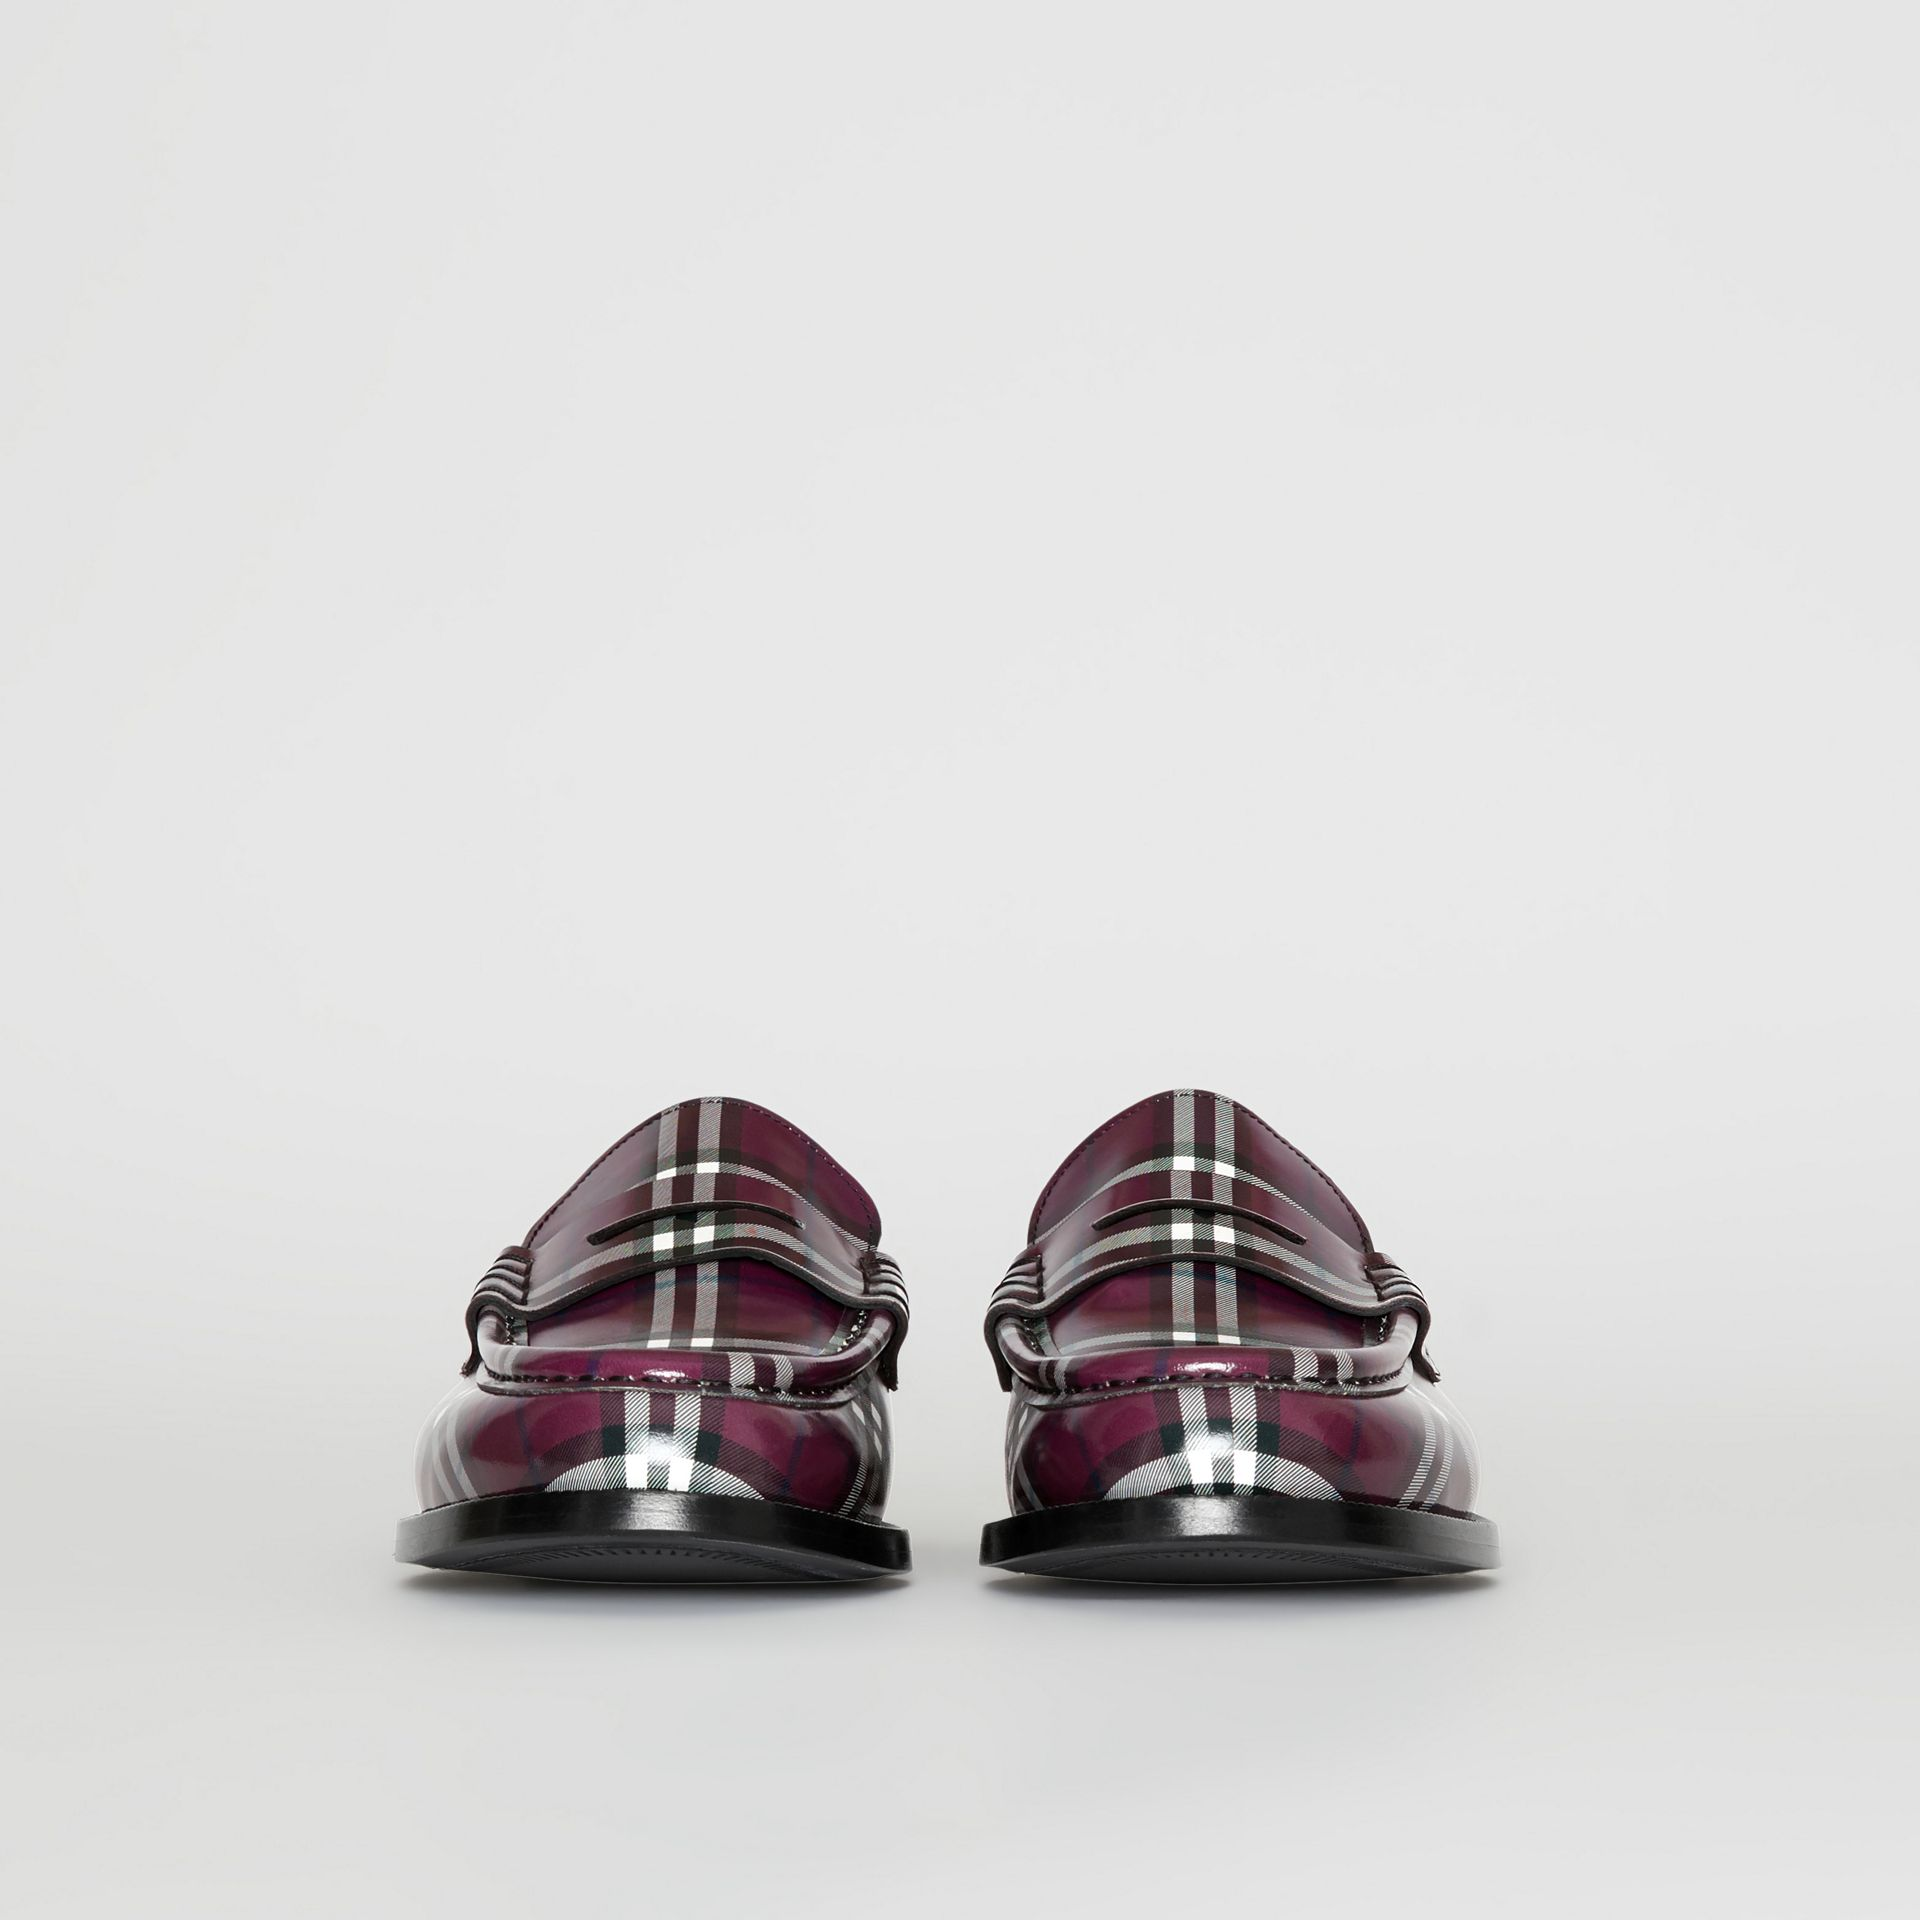 Gosha x Burberry Check Leather Loafers in Claret - Men | Burberry - gallery image 4